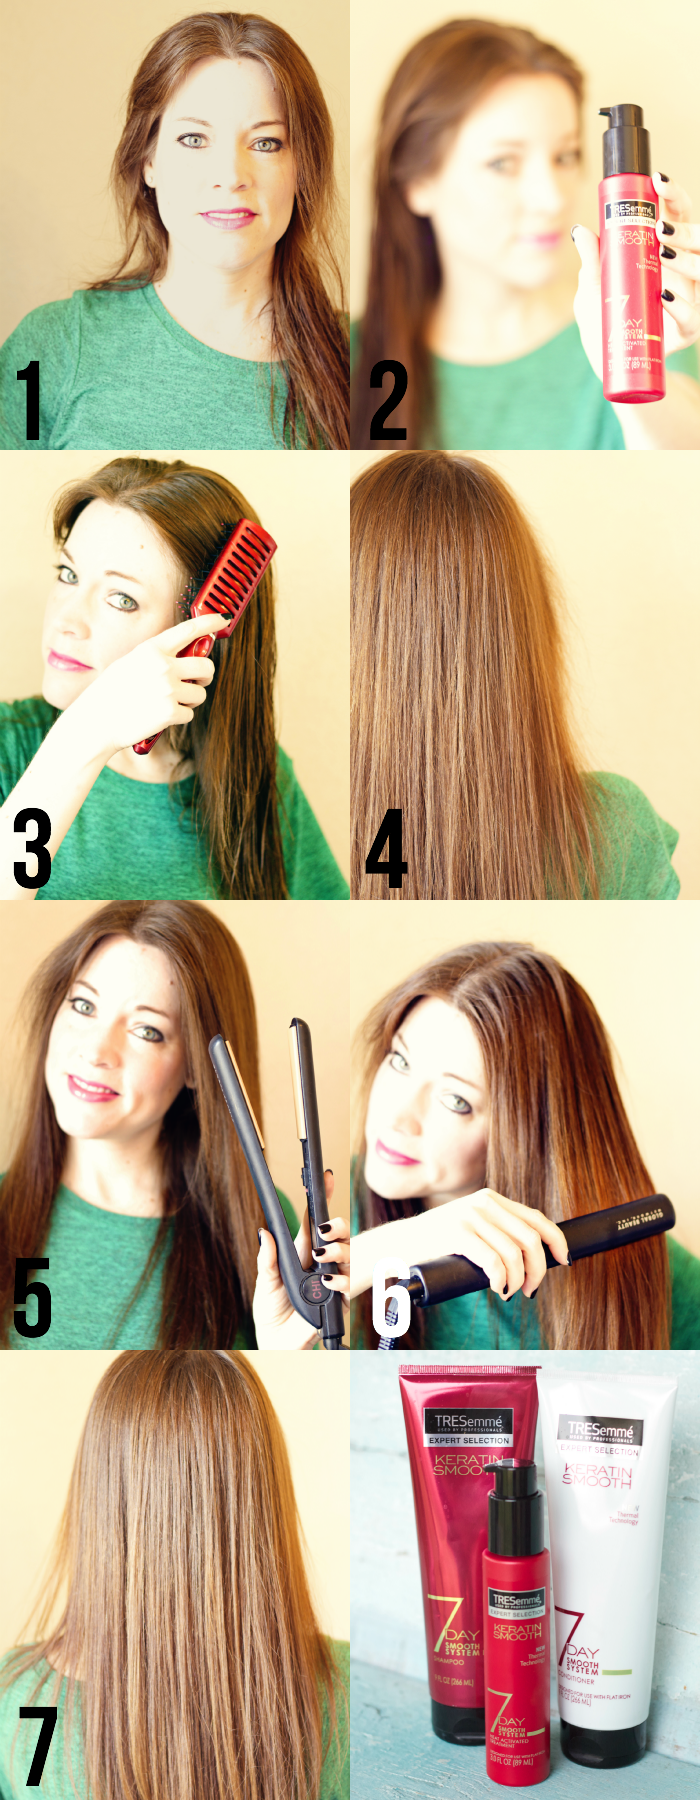 Hair Tutorial: Showing you how to use the Smooth Made Simple Hair Products